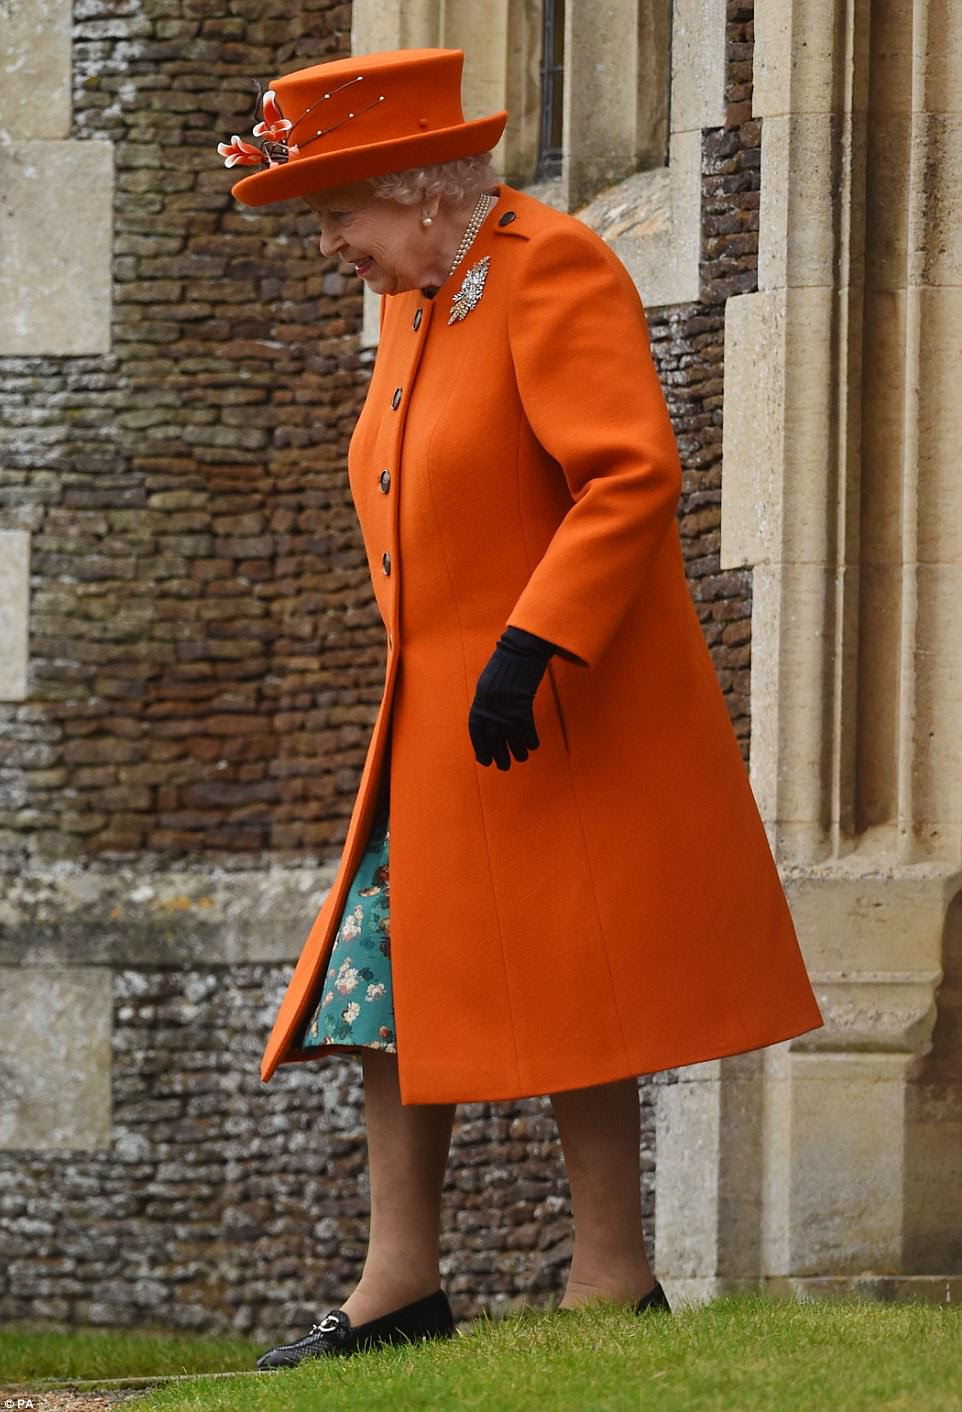 The Queen gave onlookers a peep of her teal floral dress as her bright orange coat gently parted while she strode forward